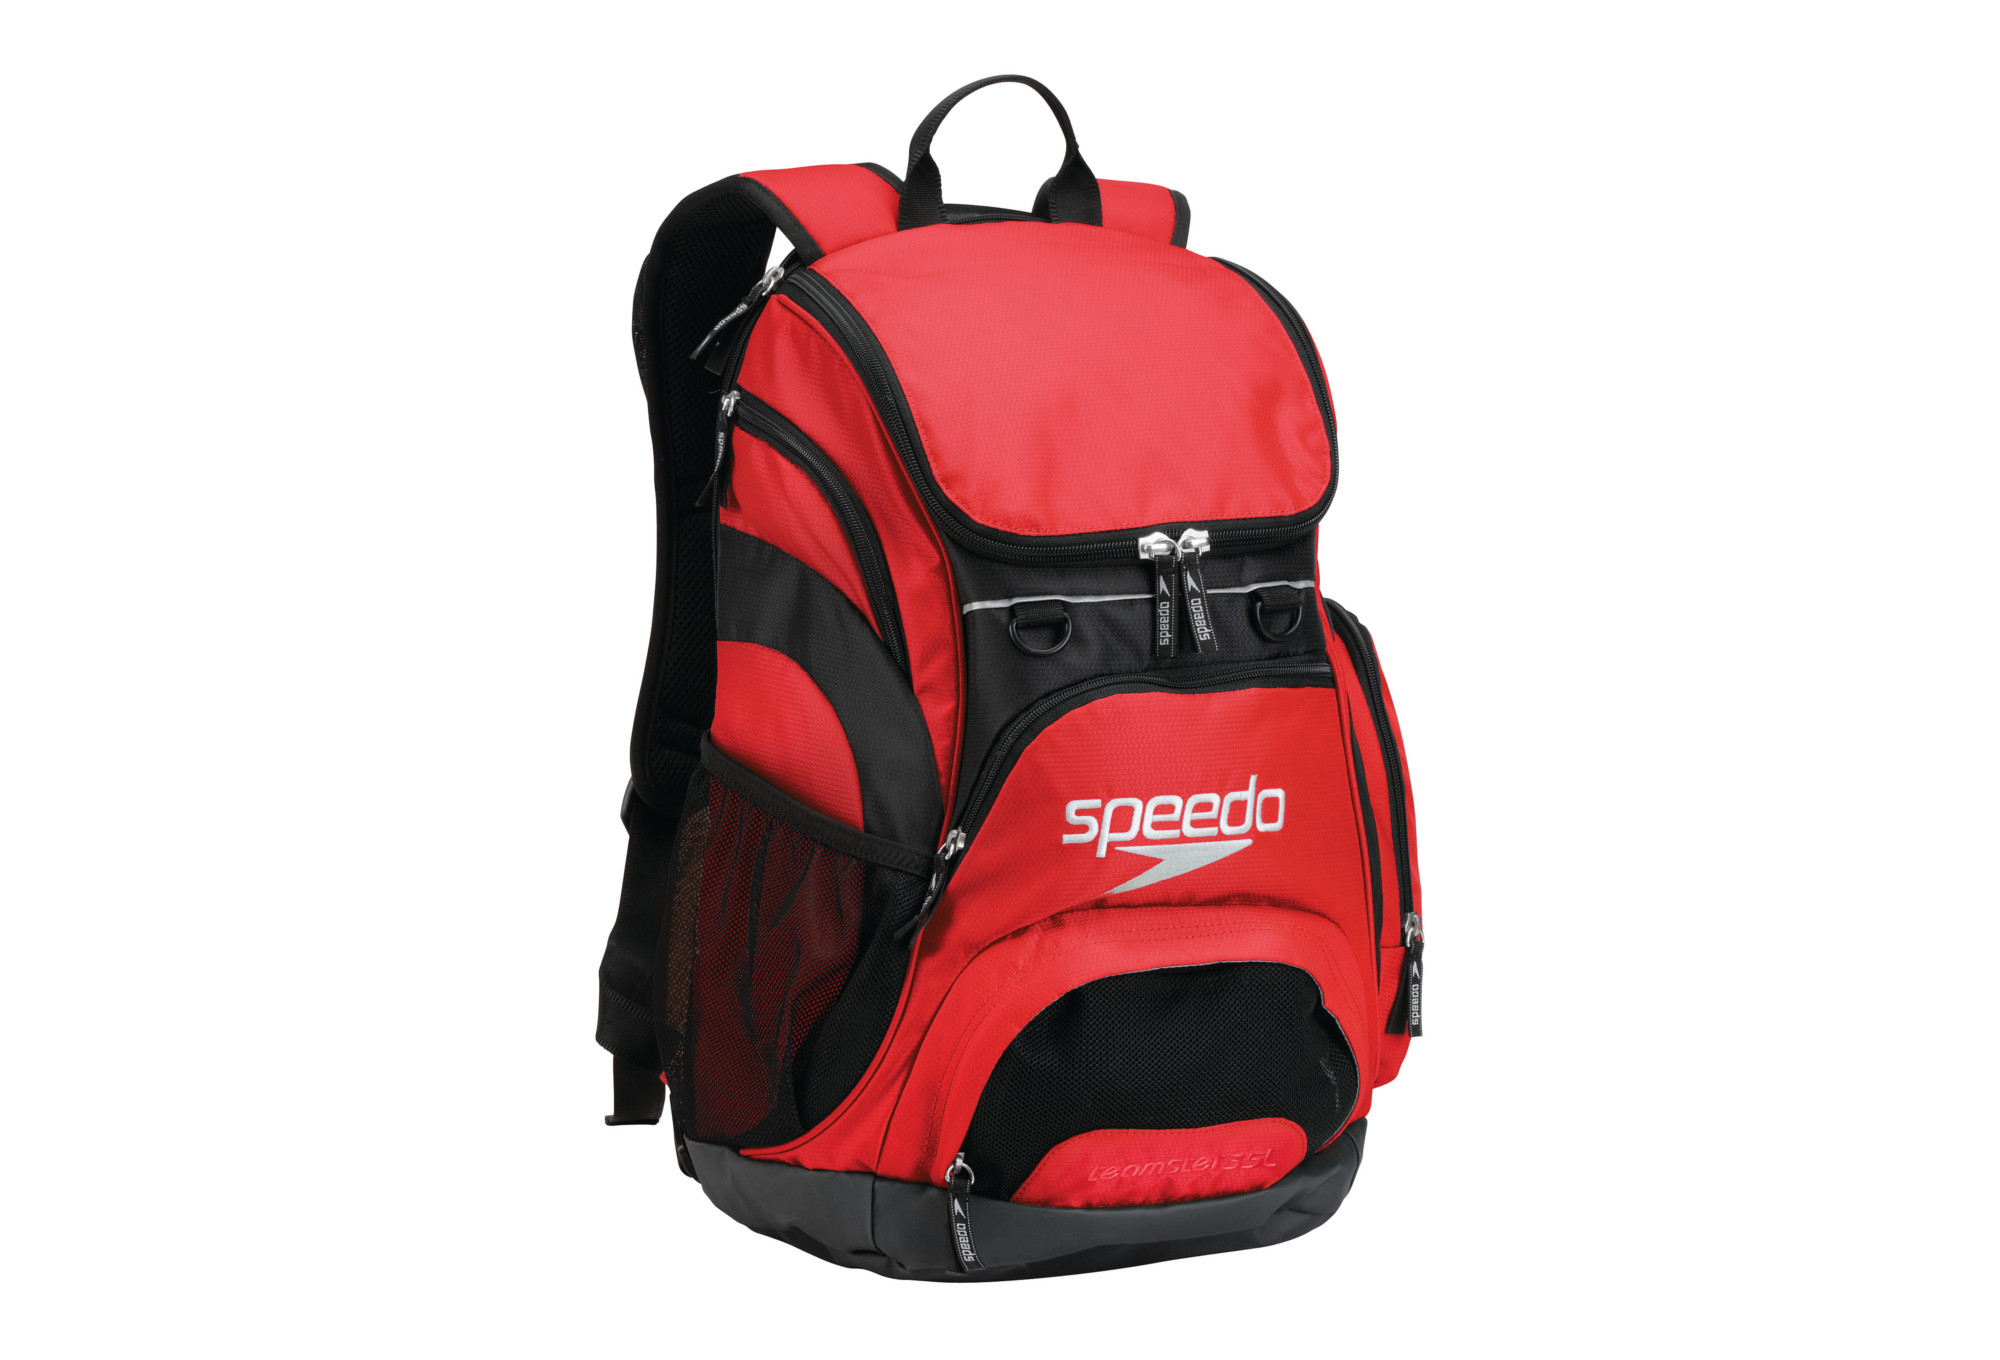 59cb5a4232a Speedo Teamster Backpack Red